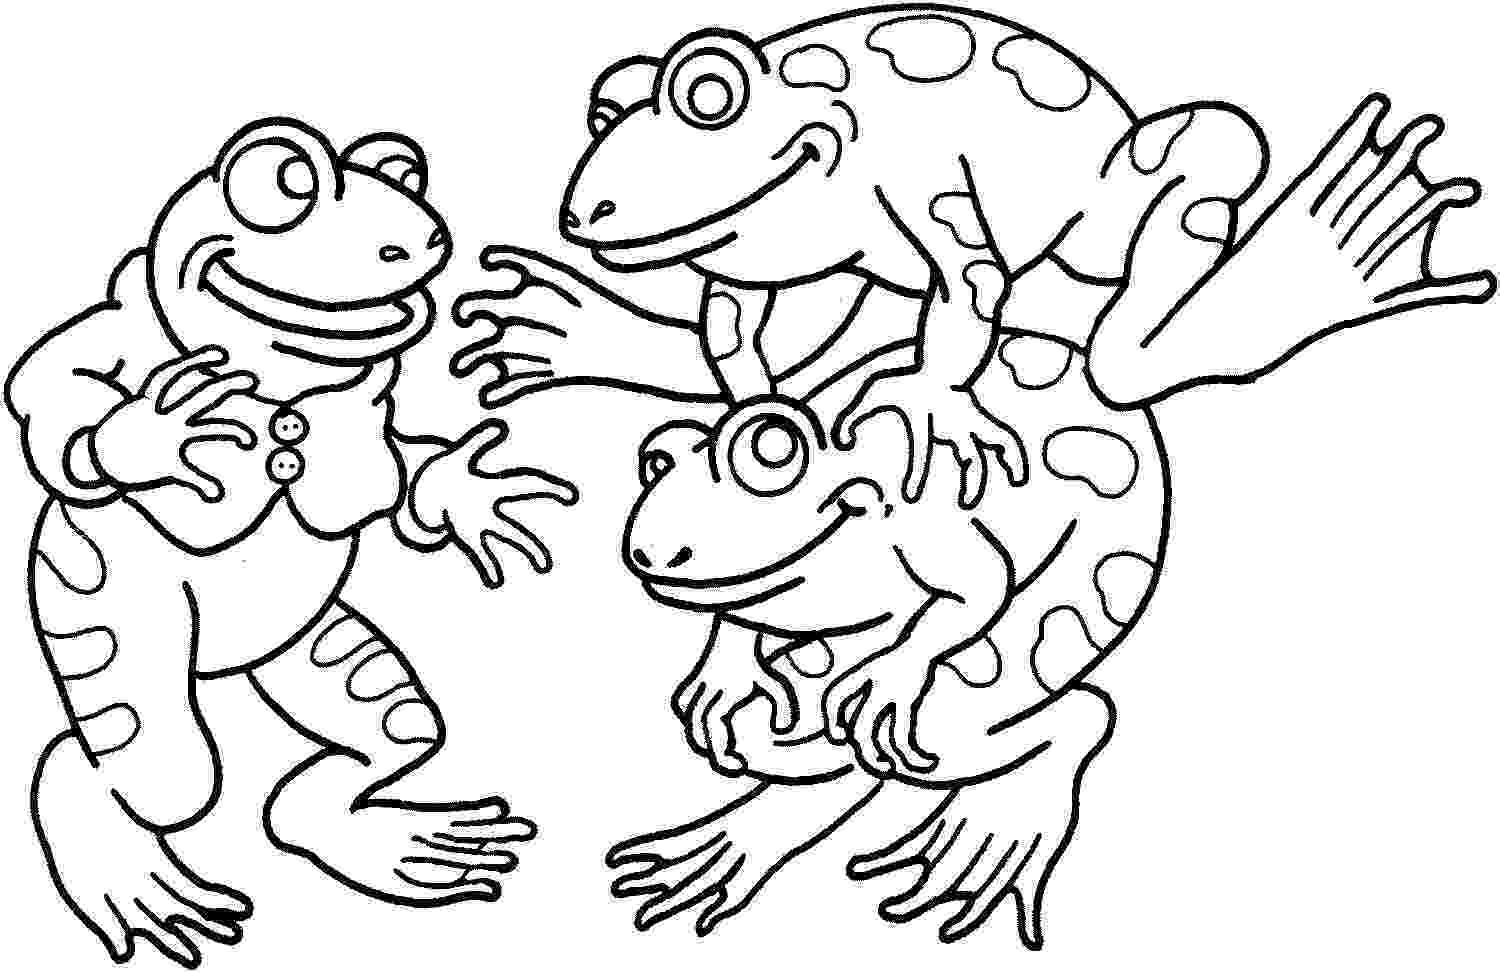 frog to color free printable frog coloring pages for kids color frog to 1 1